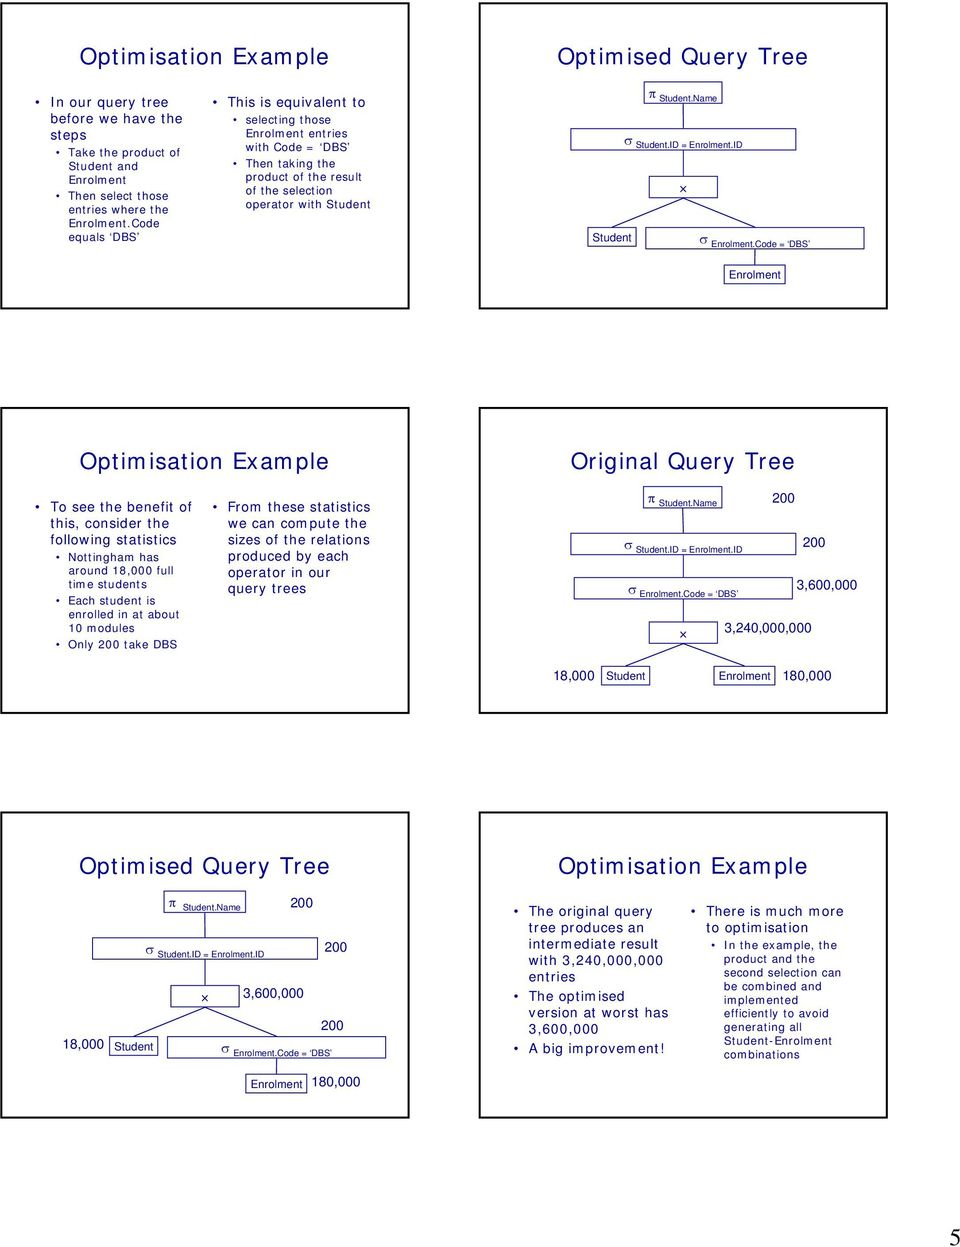 Code = DBS Optimisation Example Original Query Tree To see the benefit of this, consider the following statistics Nottingham has around 18,000 full time students Each student is enrolled in at about